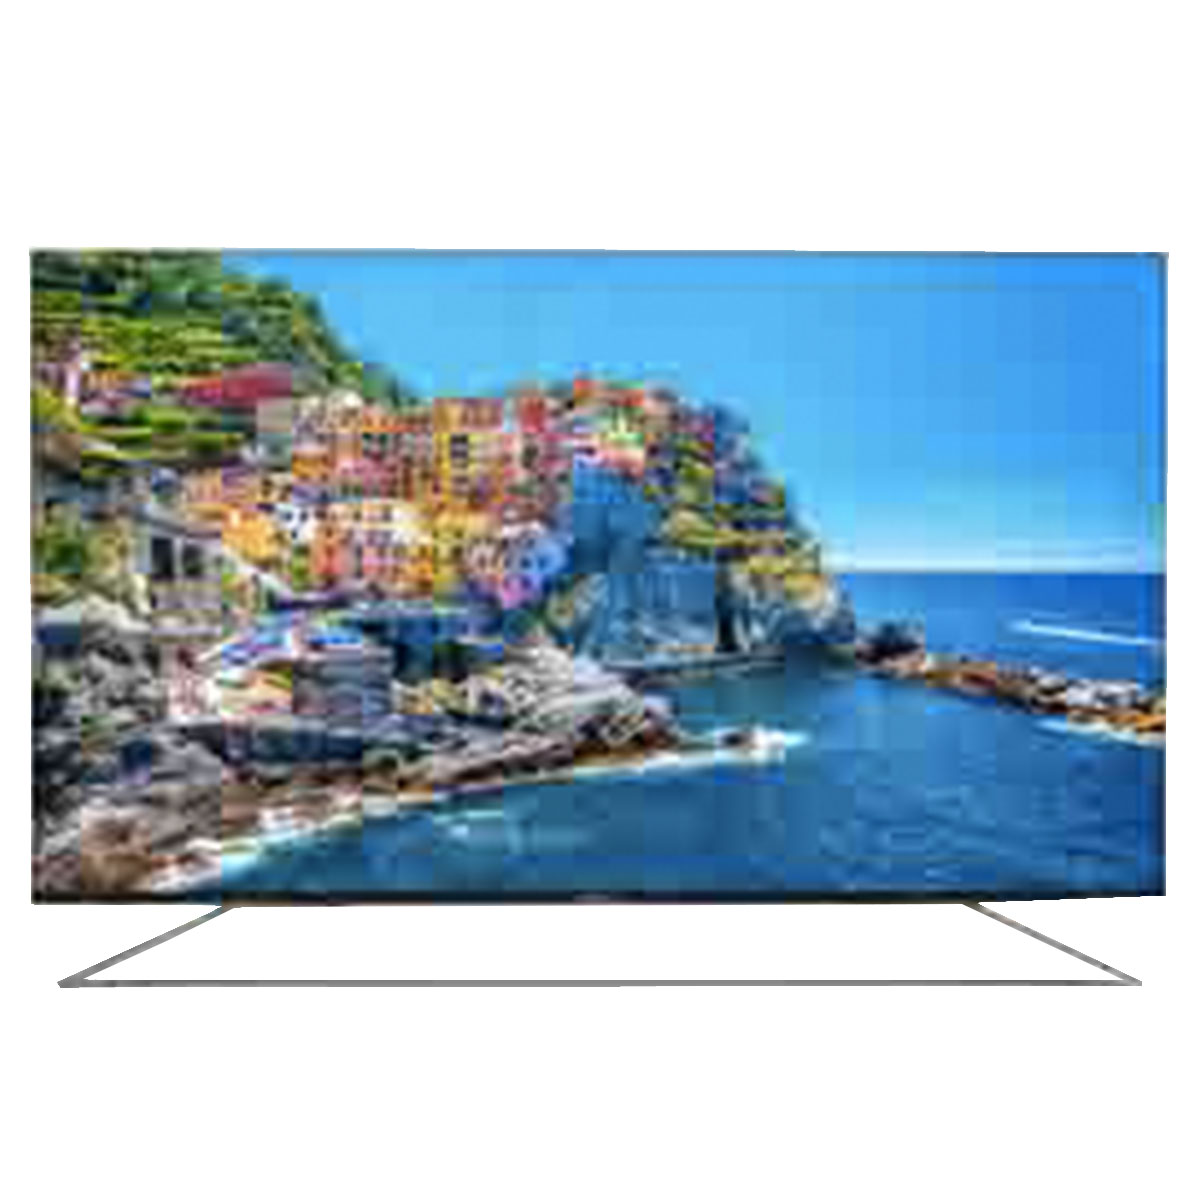 Hisense 55 Inch 4K UHD Smart LED TV (55U7A)